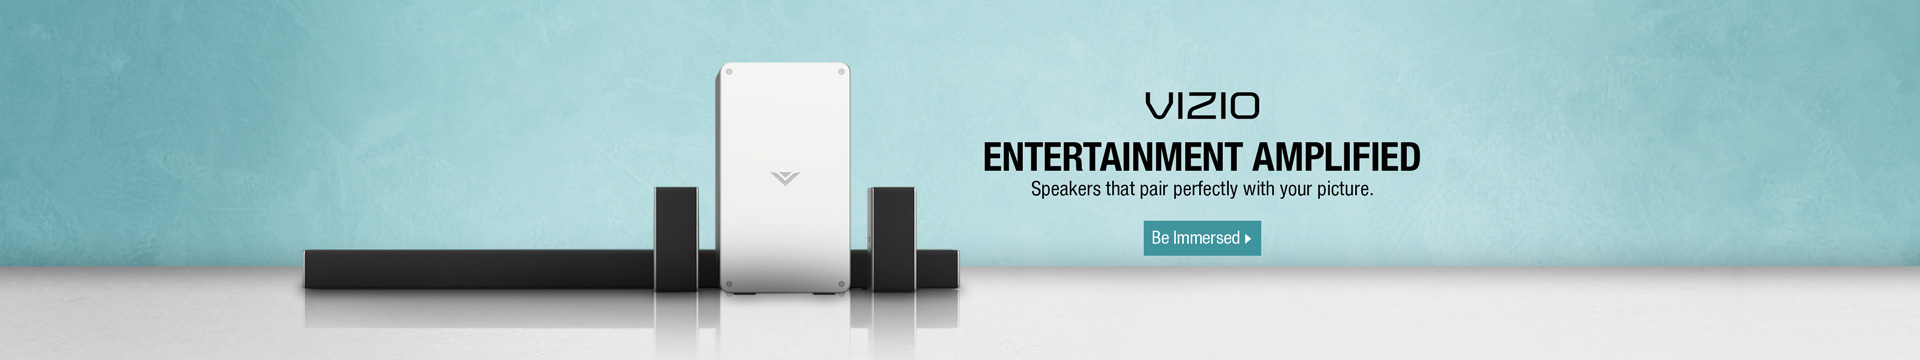 Entertainment amplified